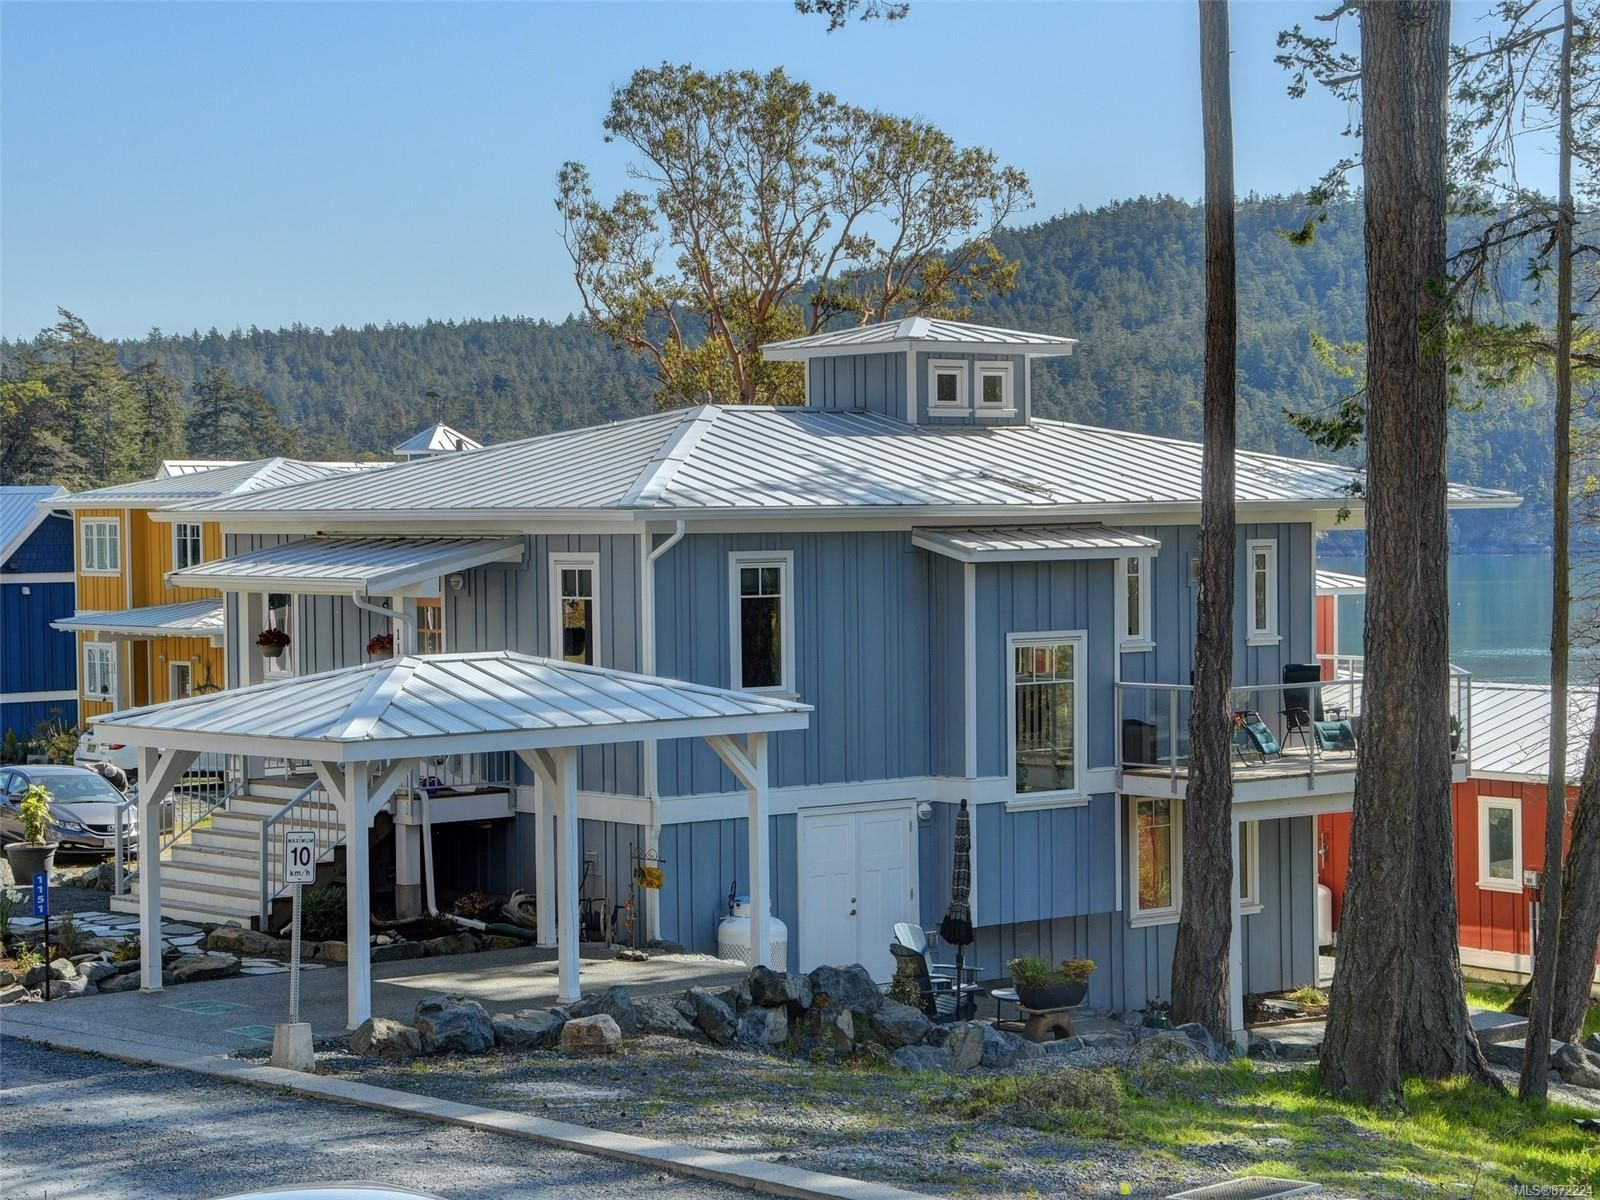 Main Photo: 1151 Marina Dr in : Sk Becher Bay House for sale (Sooke)  : MLS®# 872224